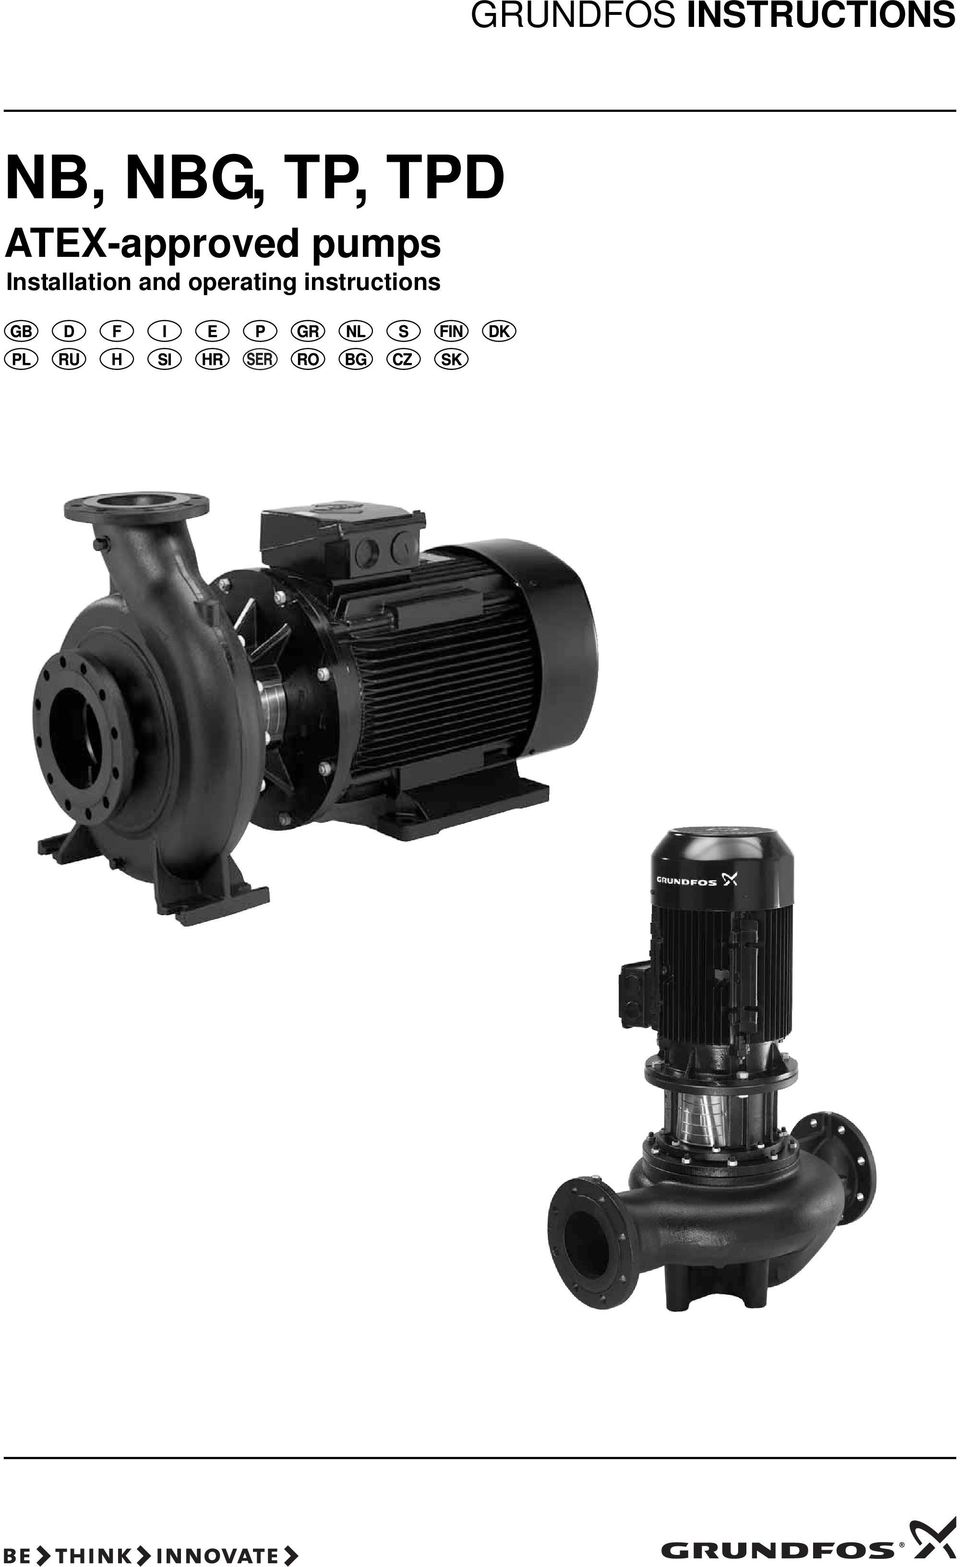 ATEX-approved pumps